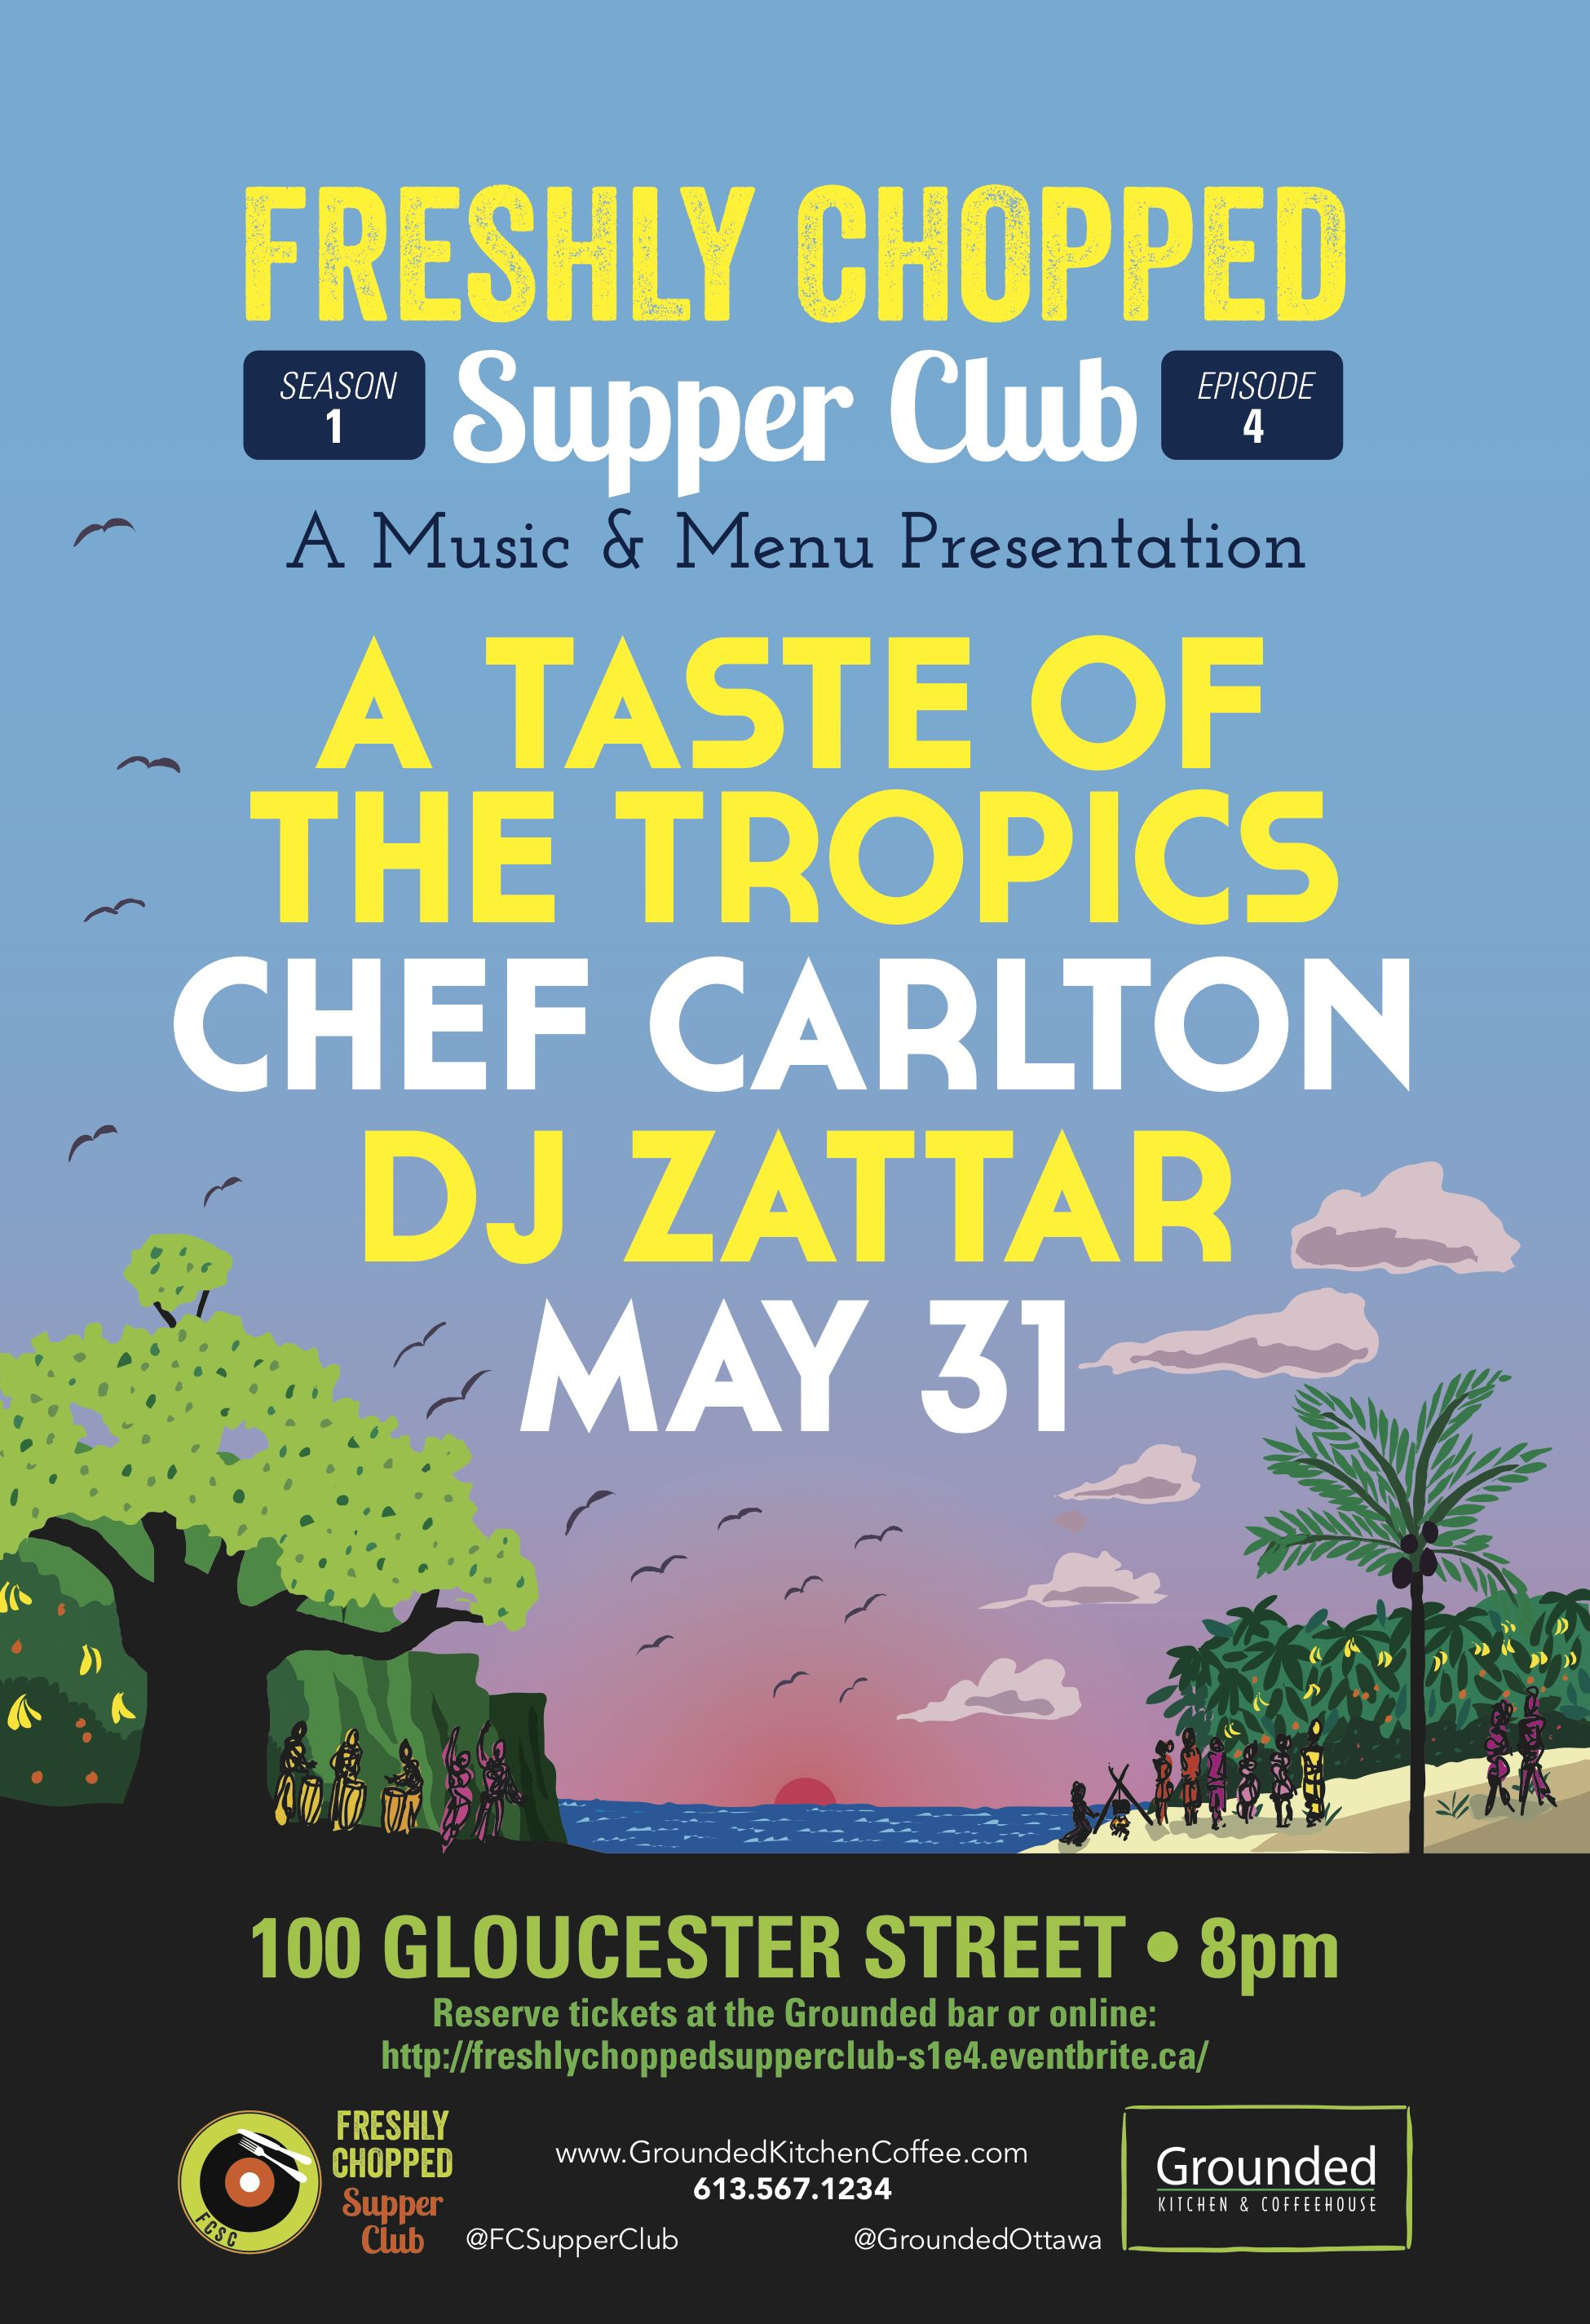 Freshly Chopped Supper Club, Season 1 Episode 4: Chef Carleton x DJ Zattar - A Taste of the Tropics